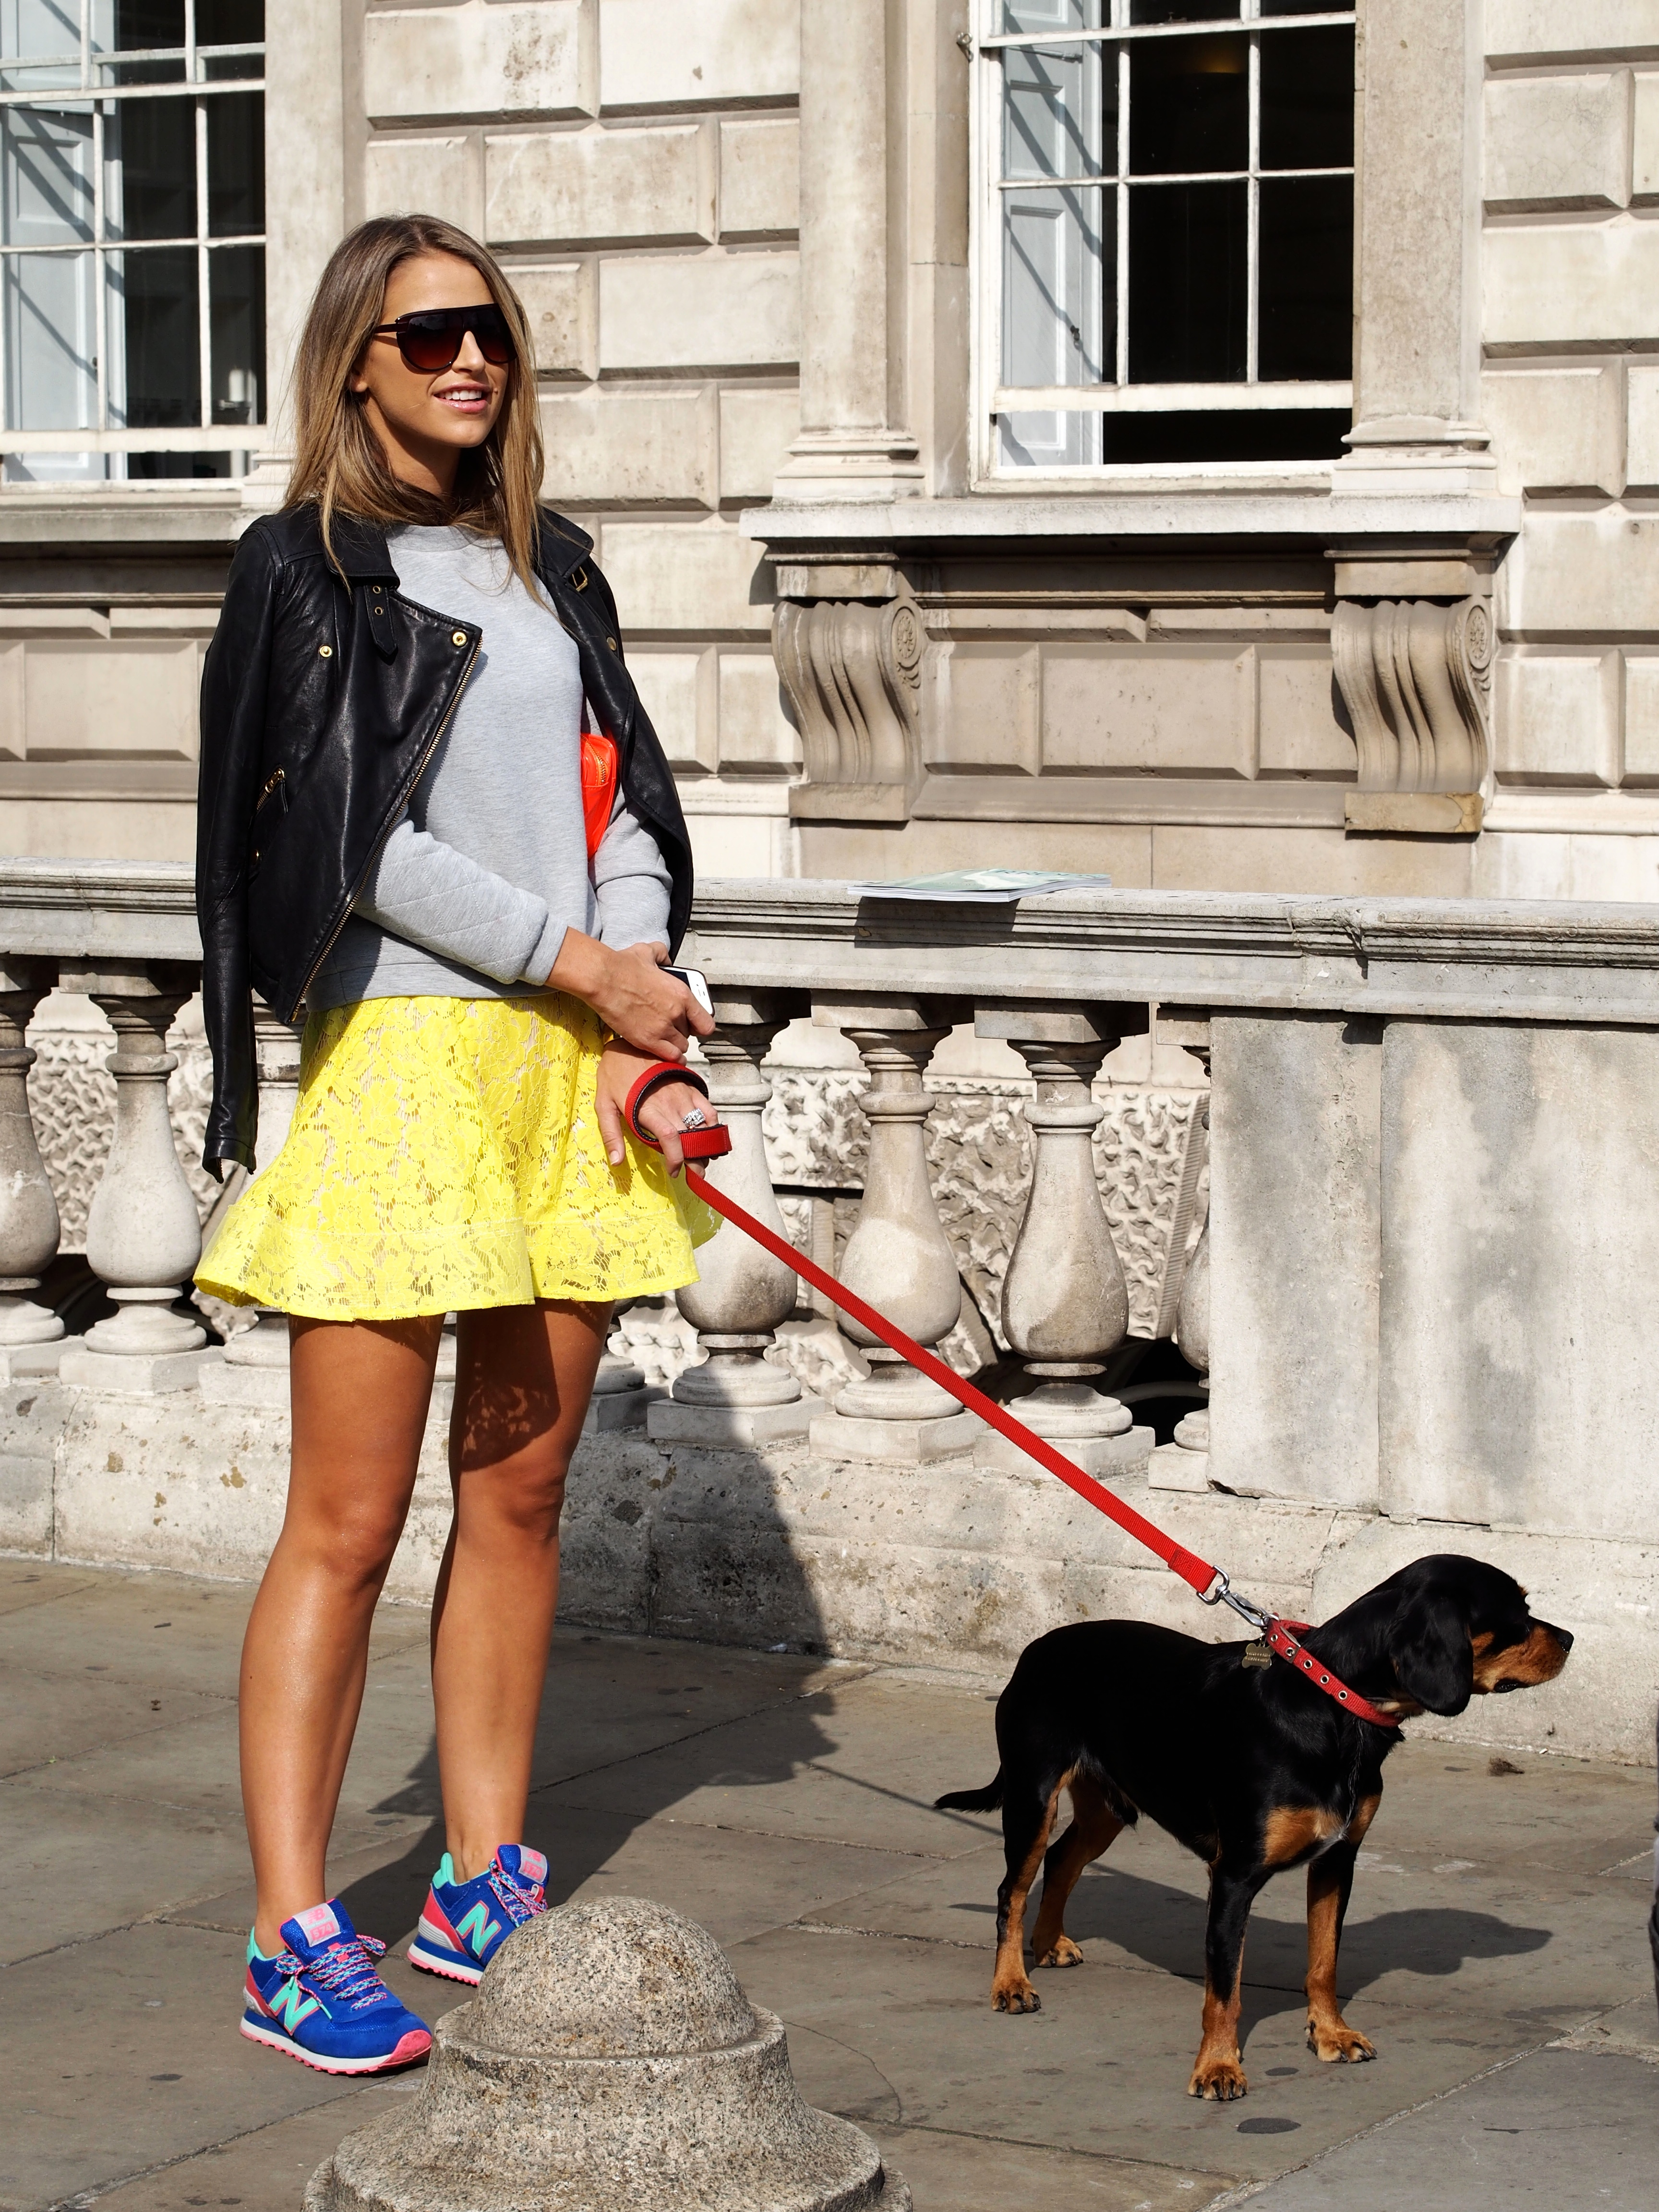 London Fashionweek Streetstyle at Somerset House London